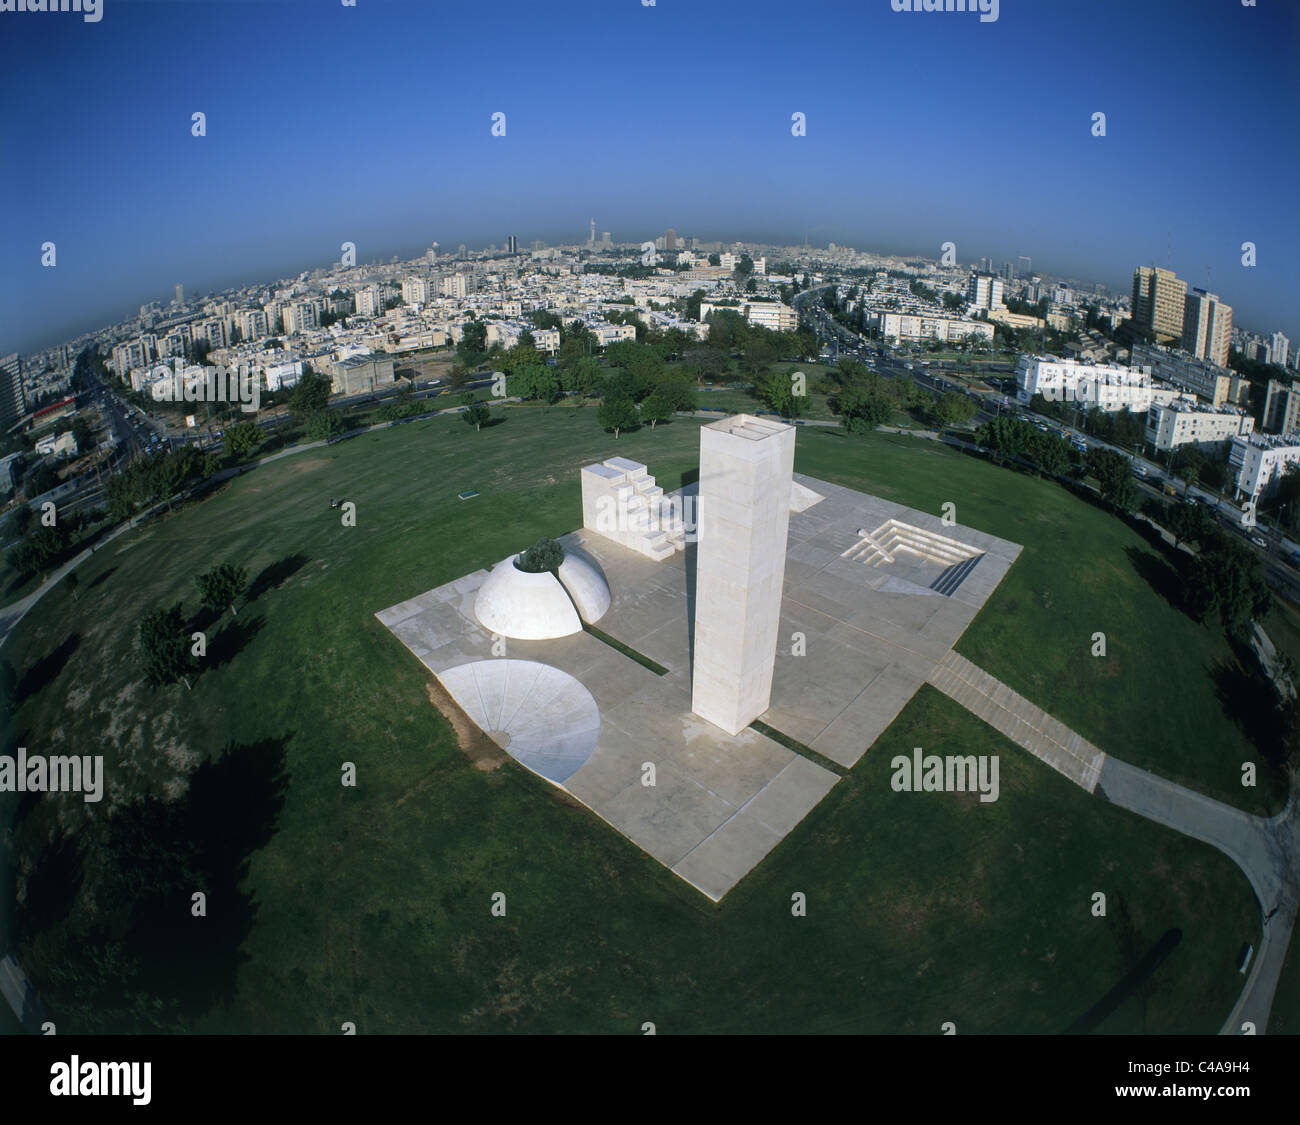 Aerial view of a statue in the Edith Wolfson Park in Tel Aviv - Stock Image